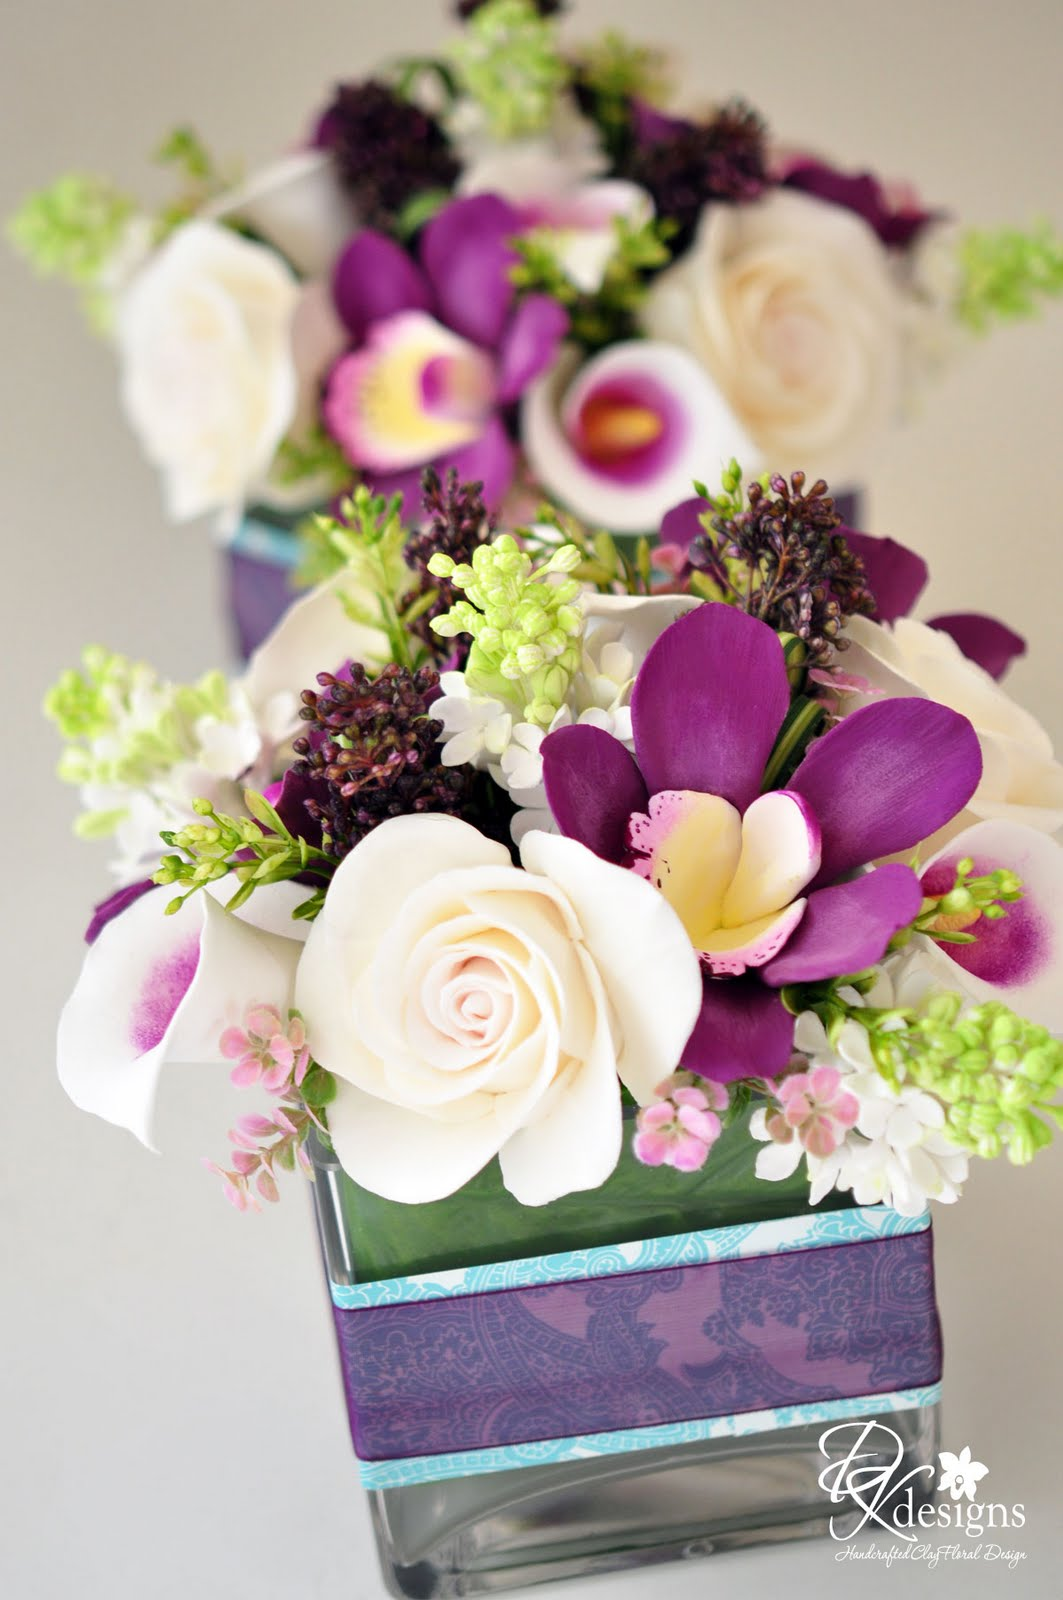 Personalized Wedding Centerpieces